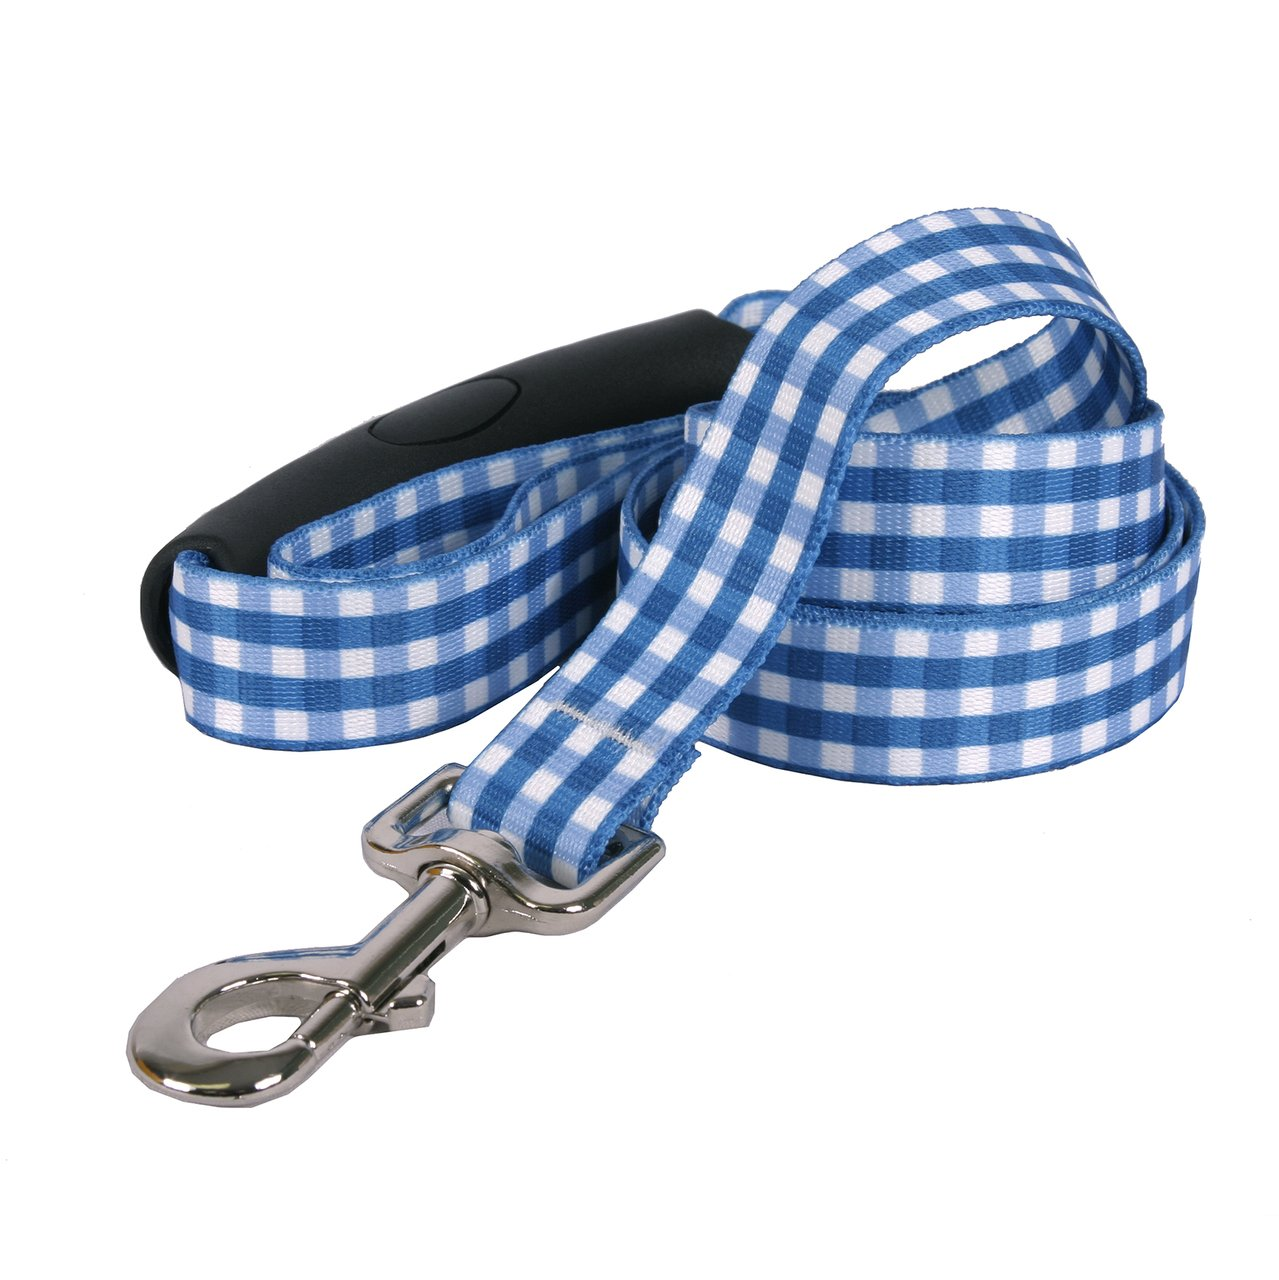 Yellow Dog Design Southern Dawg Gingham Navy Blue Dog Leash with Comfort Grip Handle-Large-1'' and 5' (60'') Made in the USA by